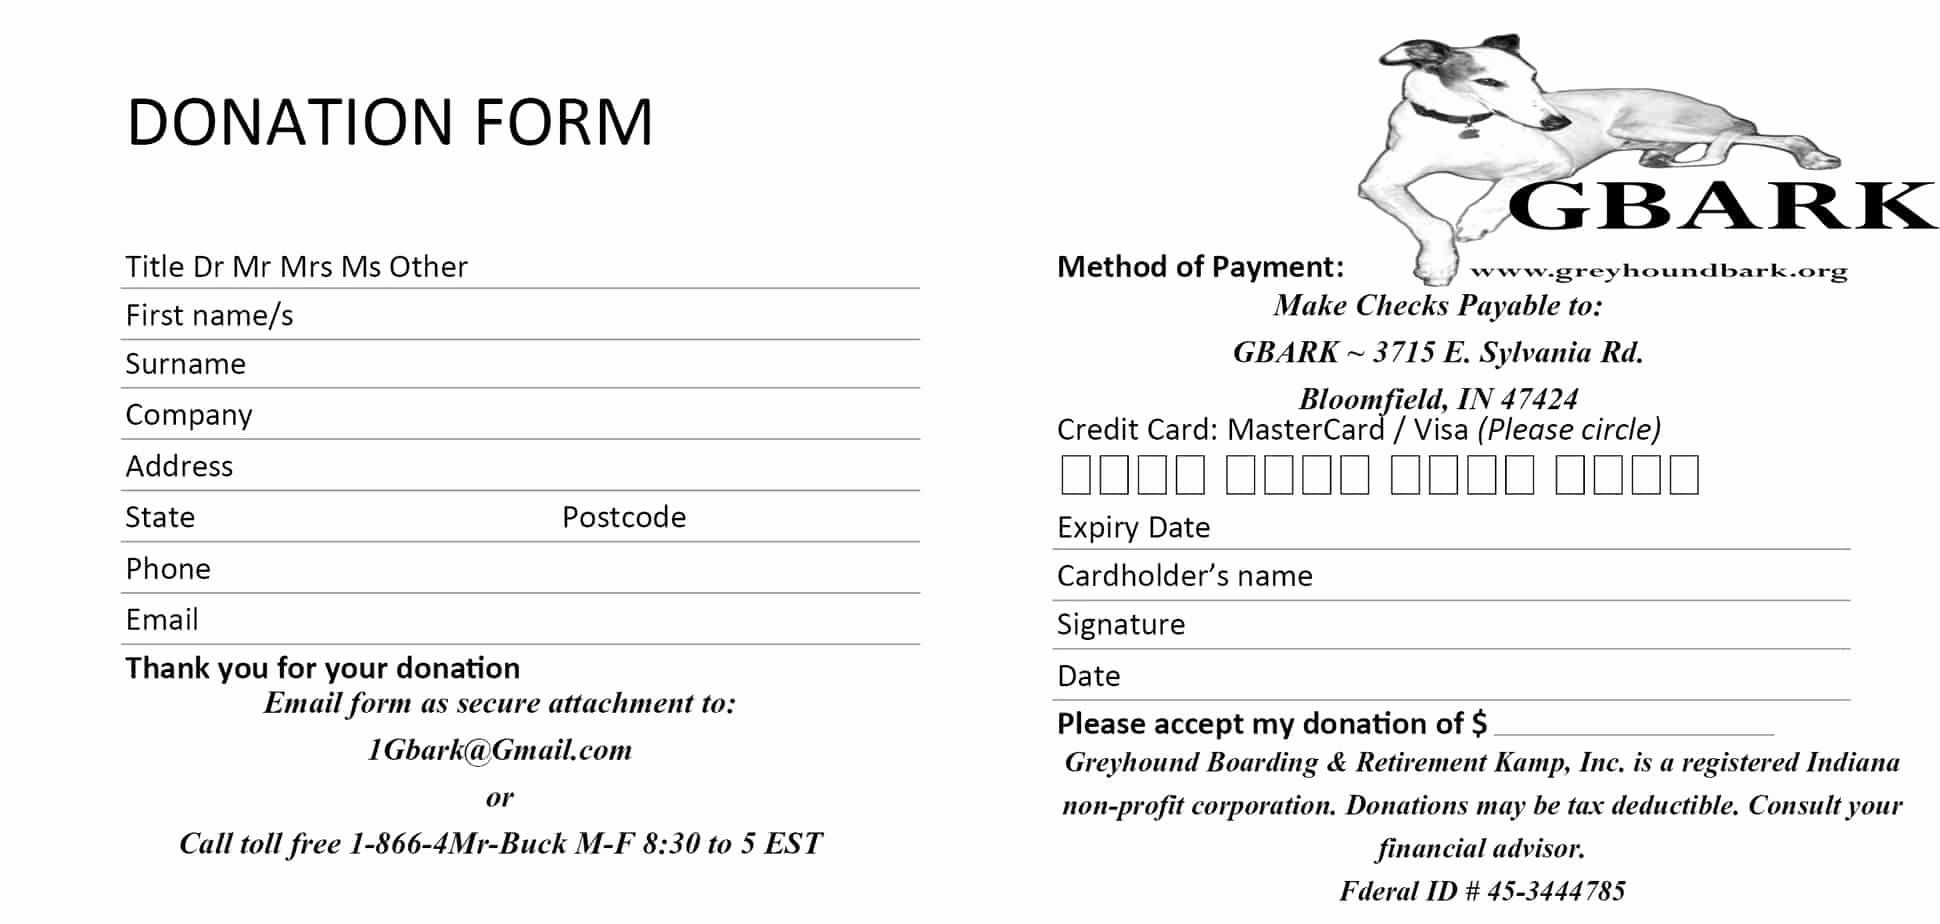 Donation Form Template Word New 6 Donation Form Templates Excel Pdf Formats Donation Request Form Donation Form Donation Request